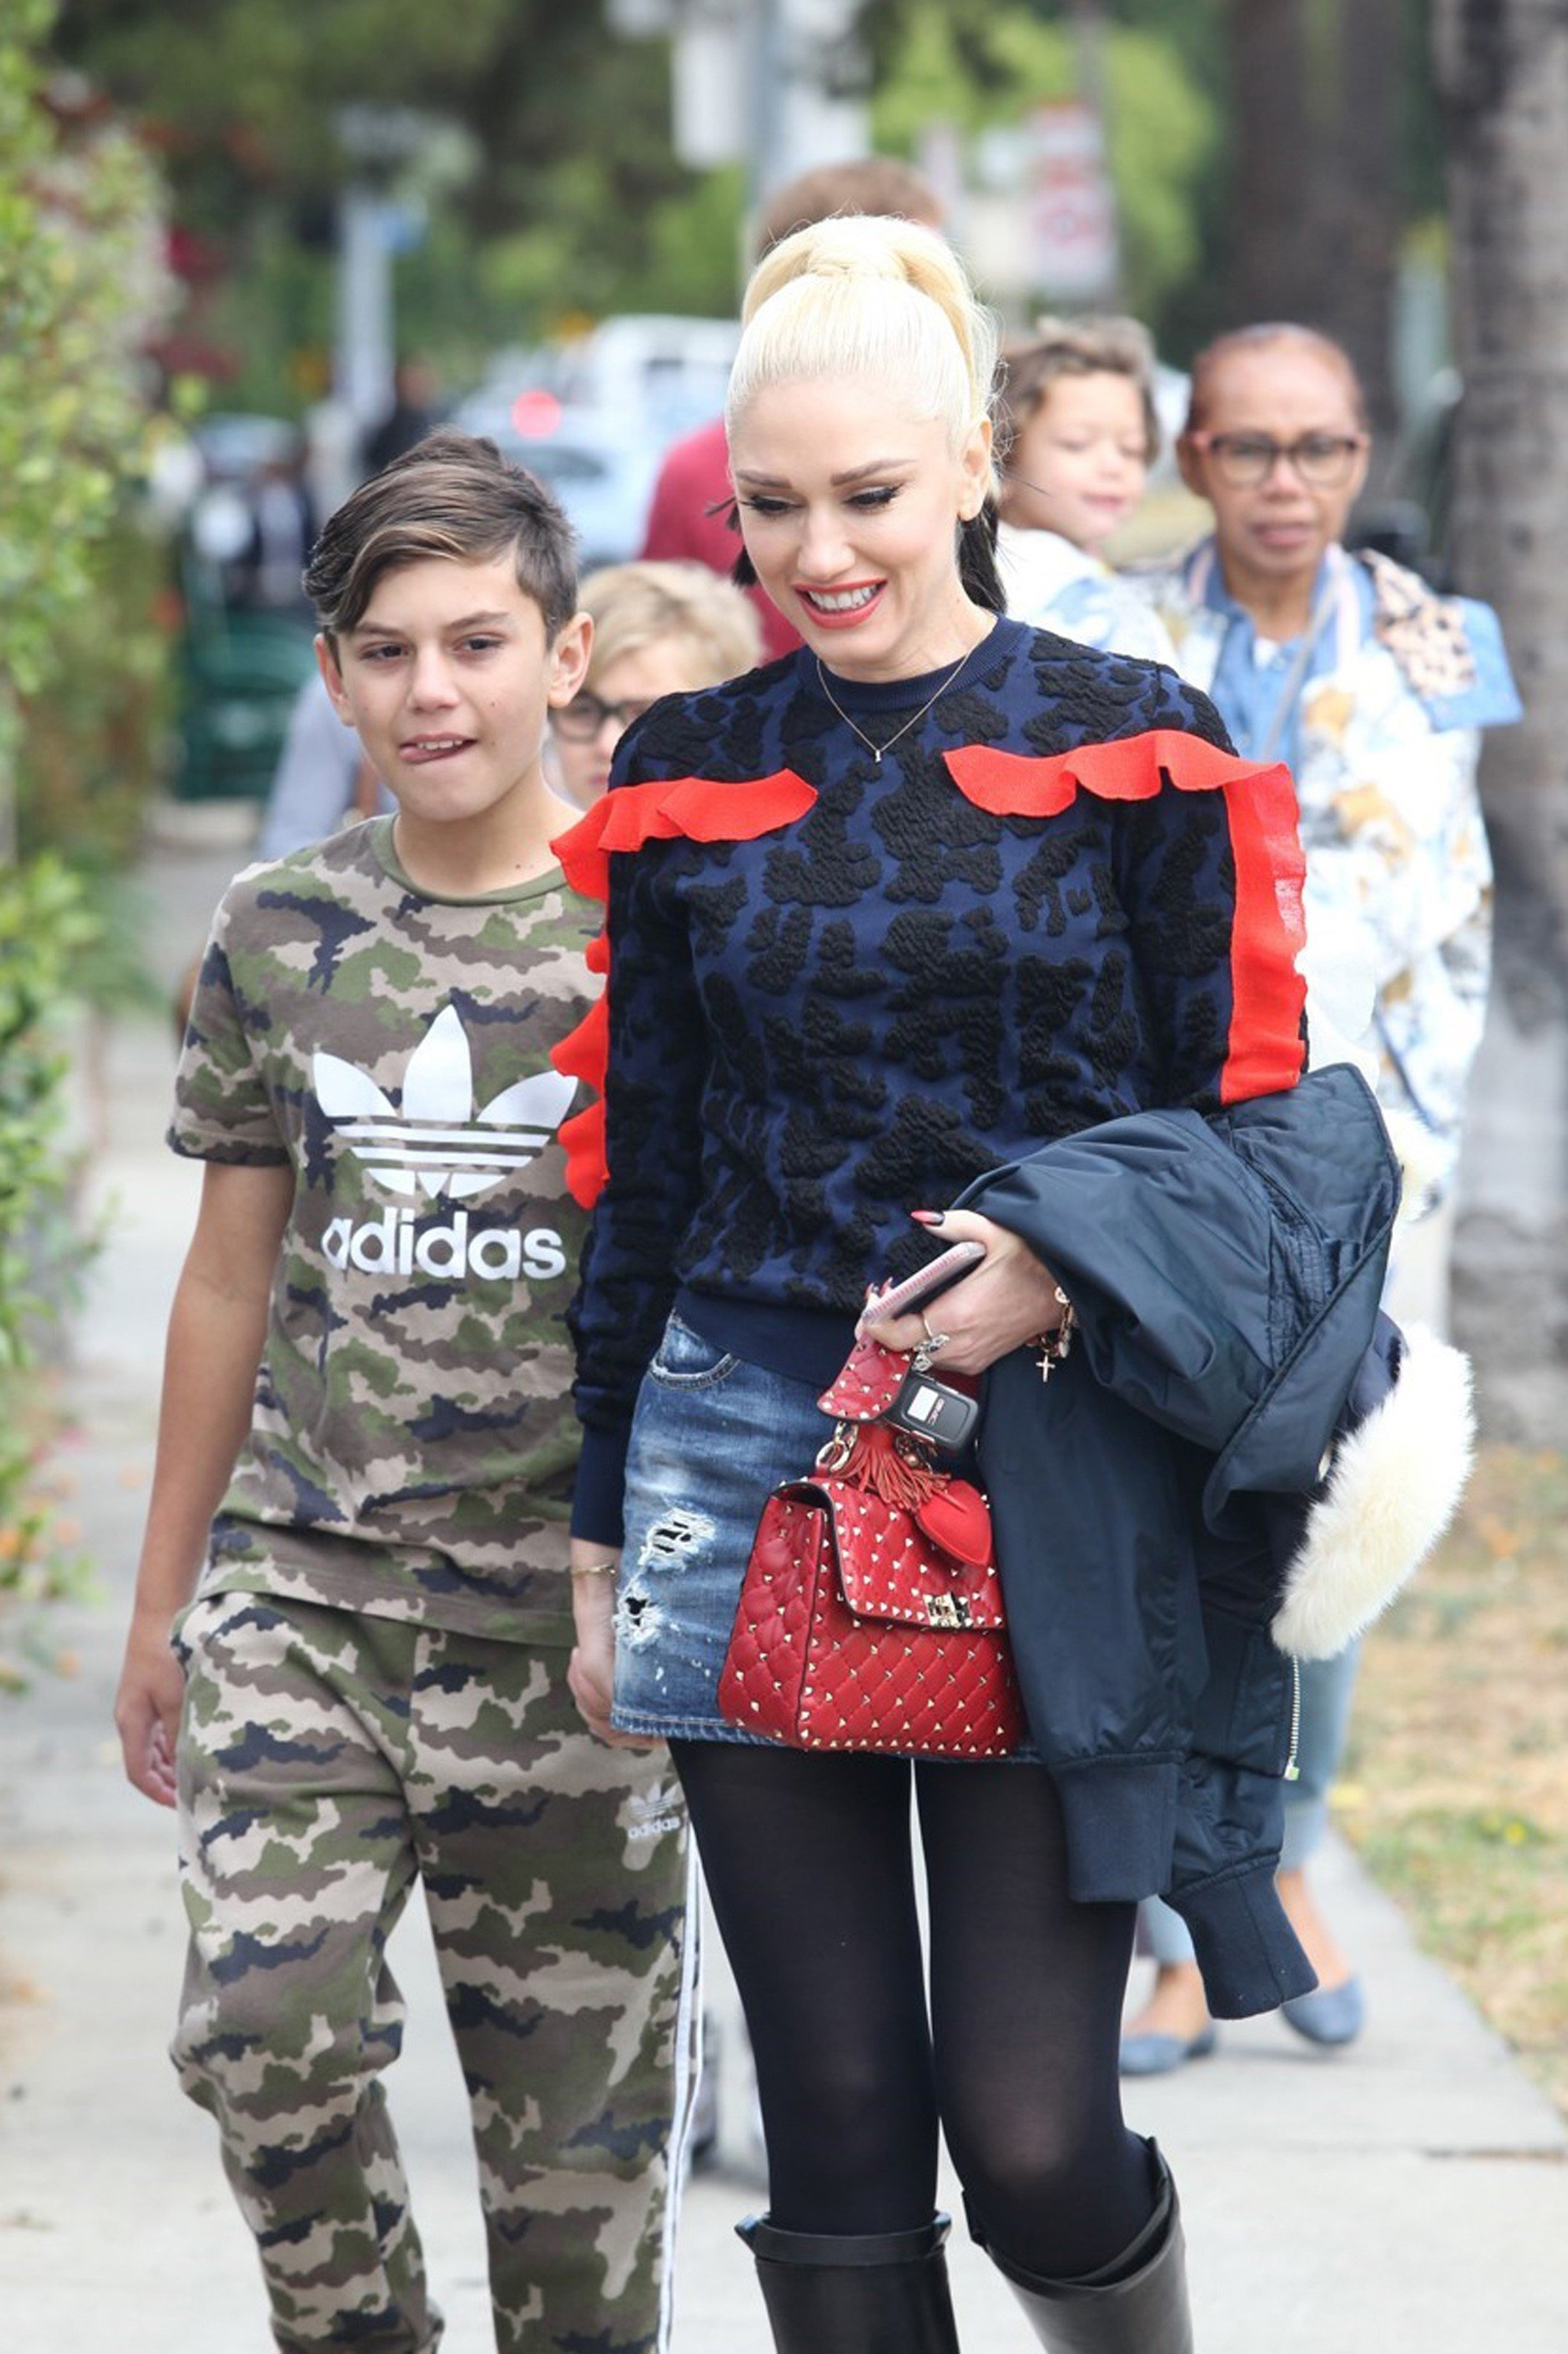 Los Angeles, CA - Gwen Stefani is happy after God's word at Sunday service with her kids and nanny in L.A. Gwen gave a big smile as she posed for a fast selfie with a friendly church goer, on the way to her car.           May 7, 2017, Image: 331586114, License: Rights-managed, Restrictions: , Model Release: no, Credit line: Profimedia, AKM-GSI